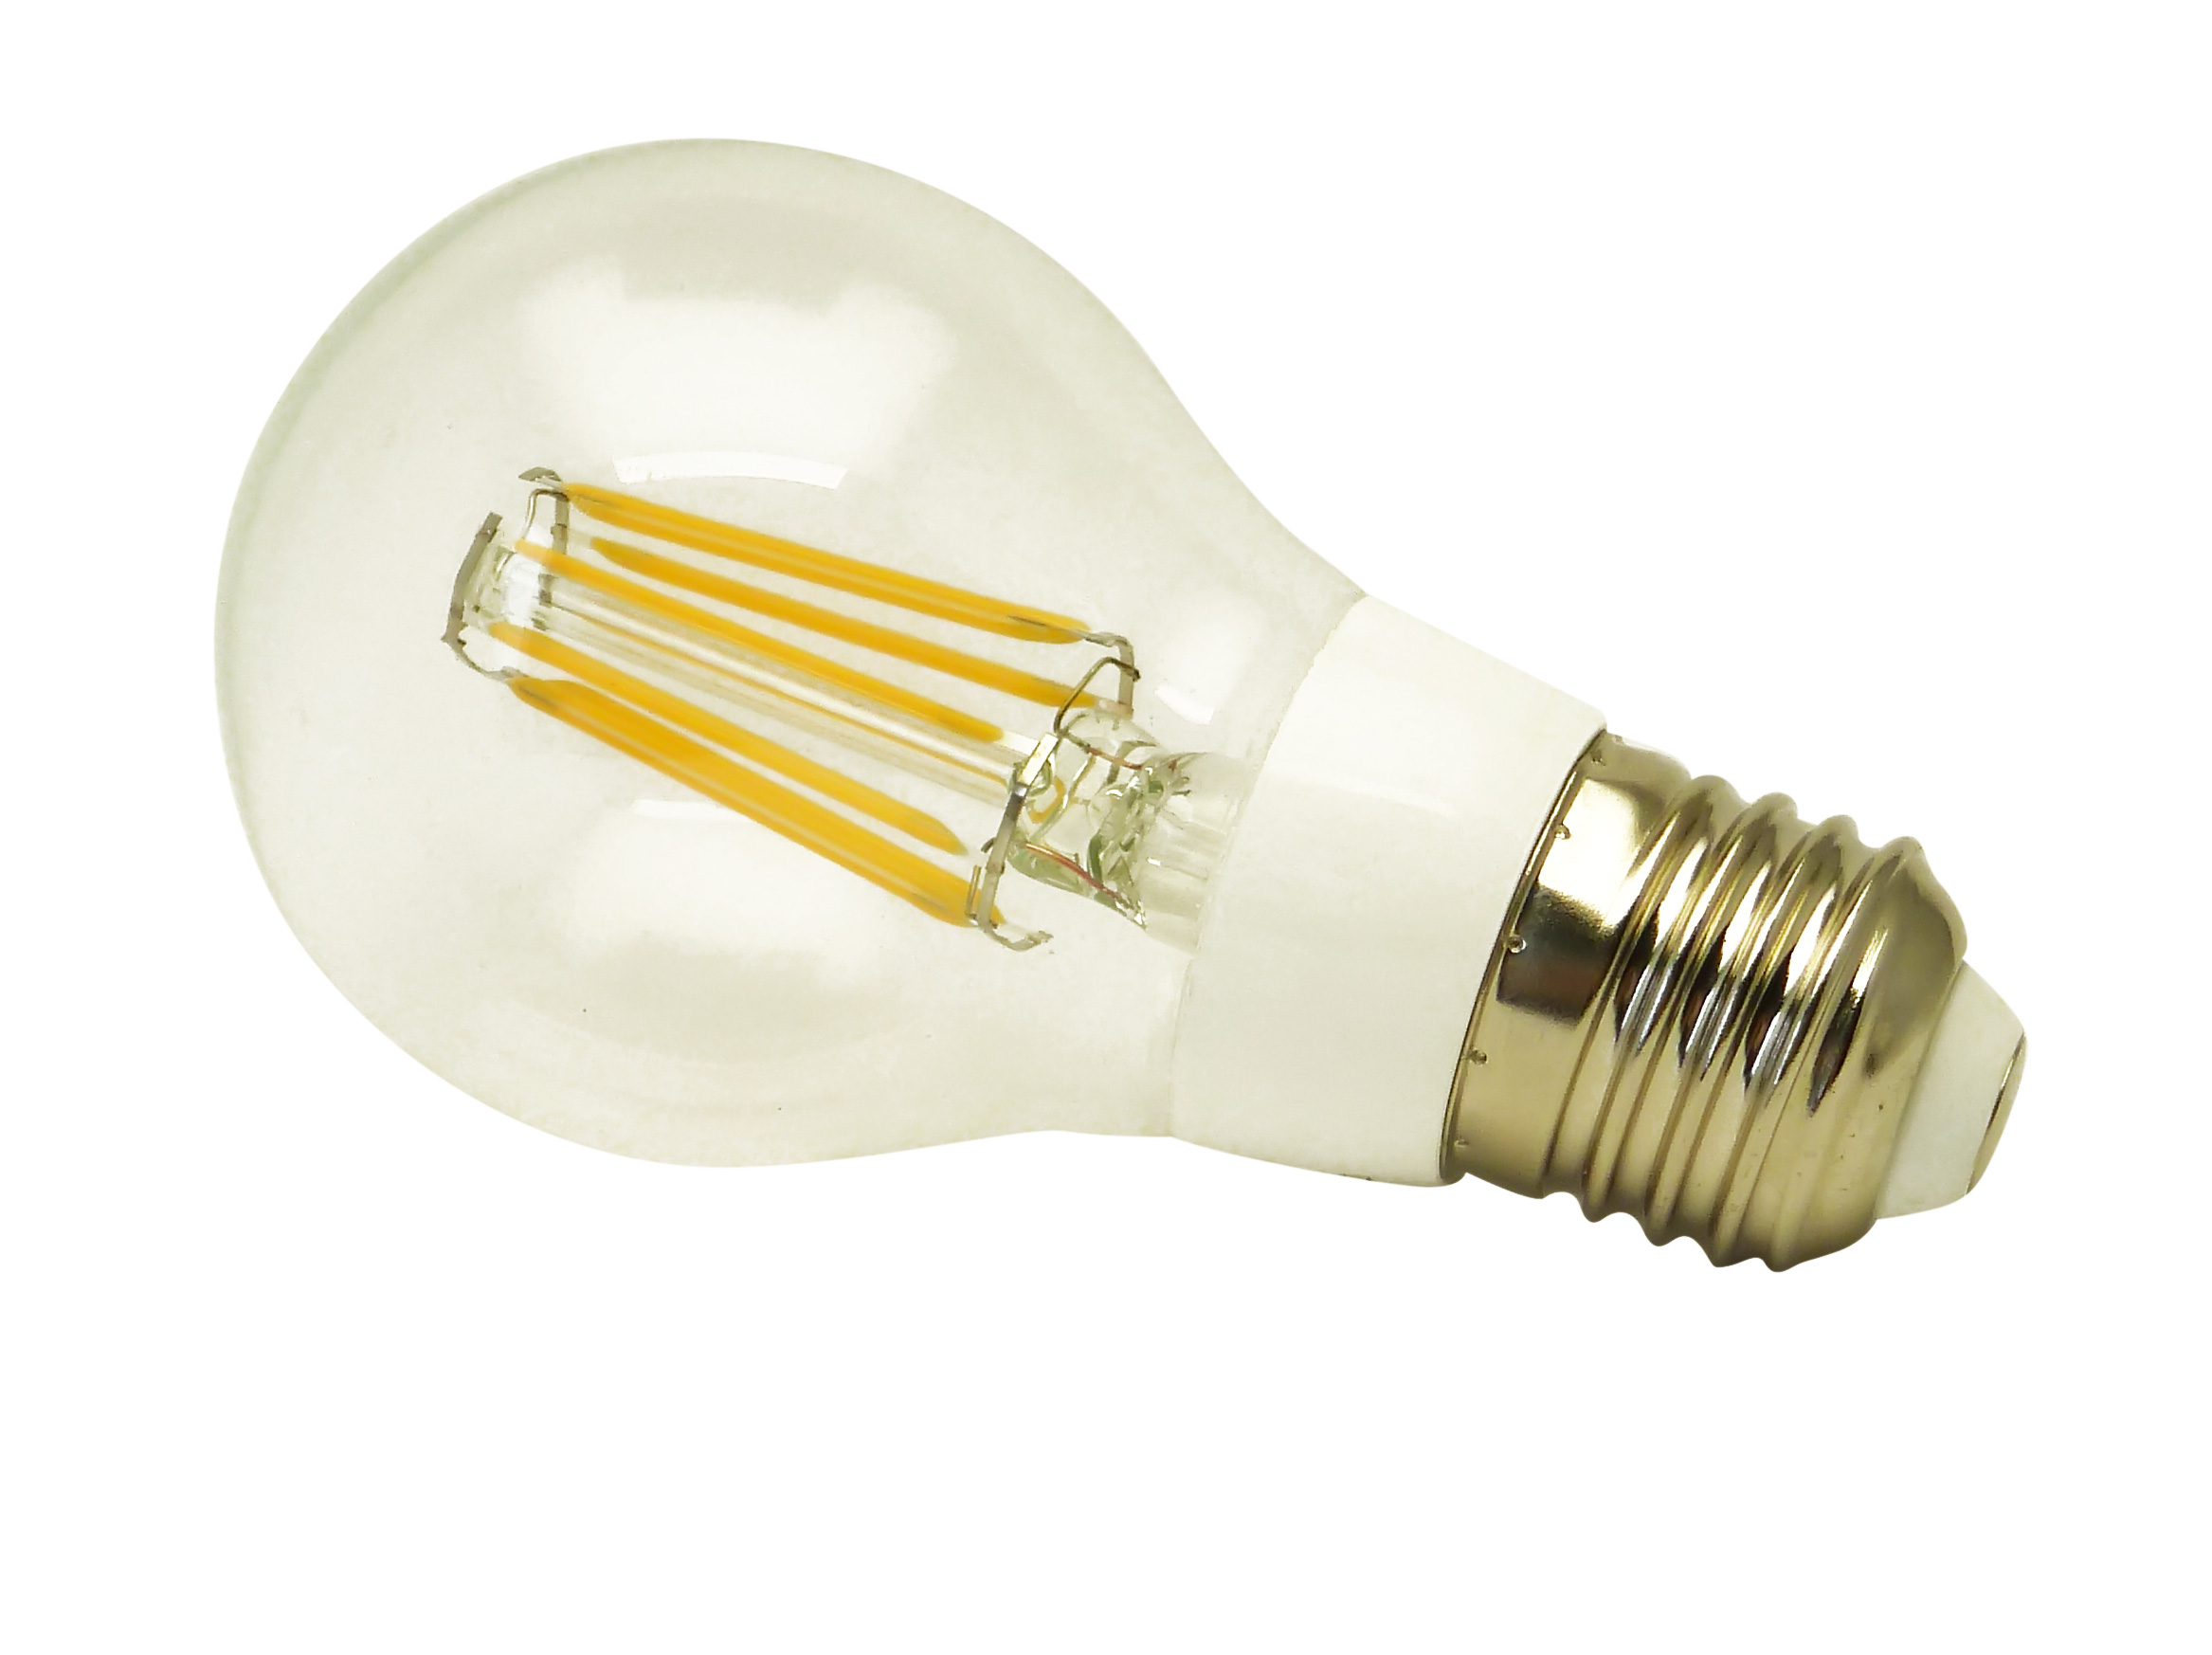 Led Lampen E27 : Lead energy led lampe e w filament